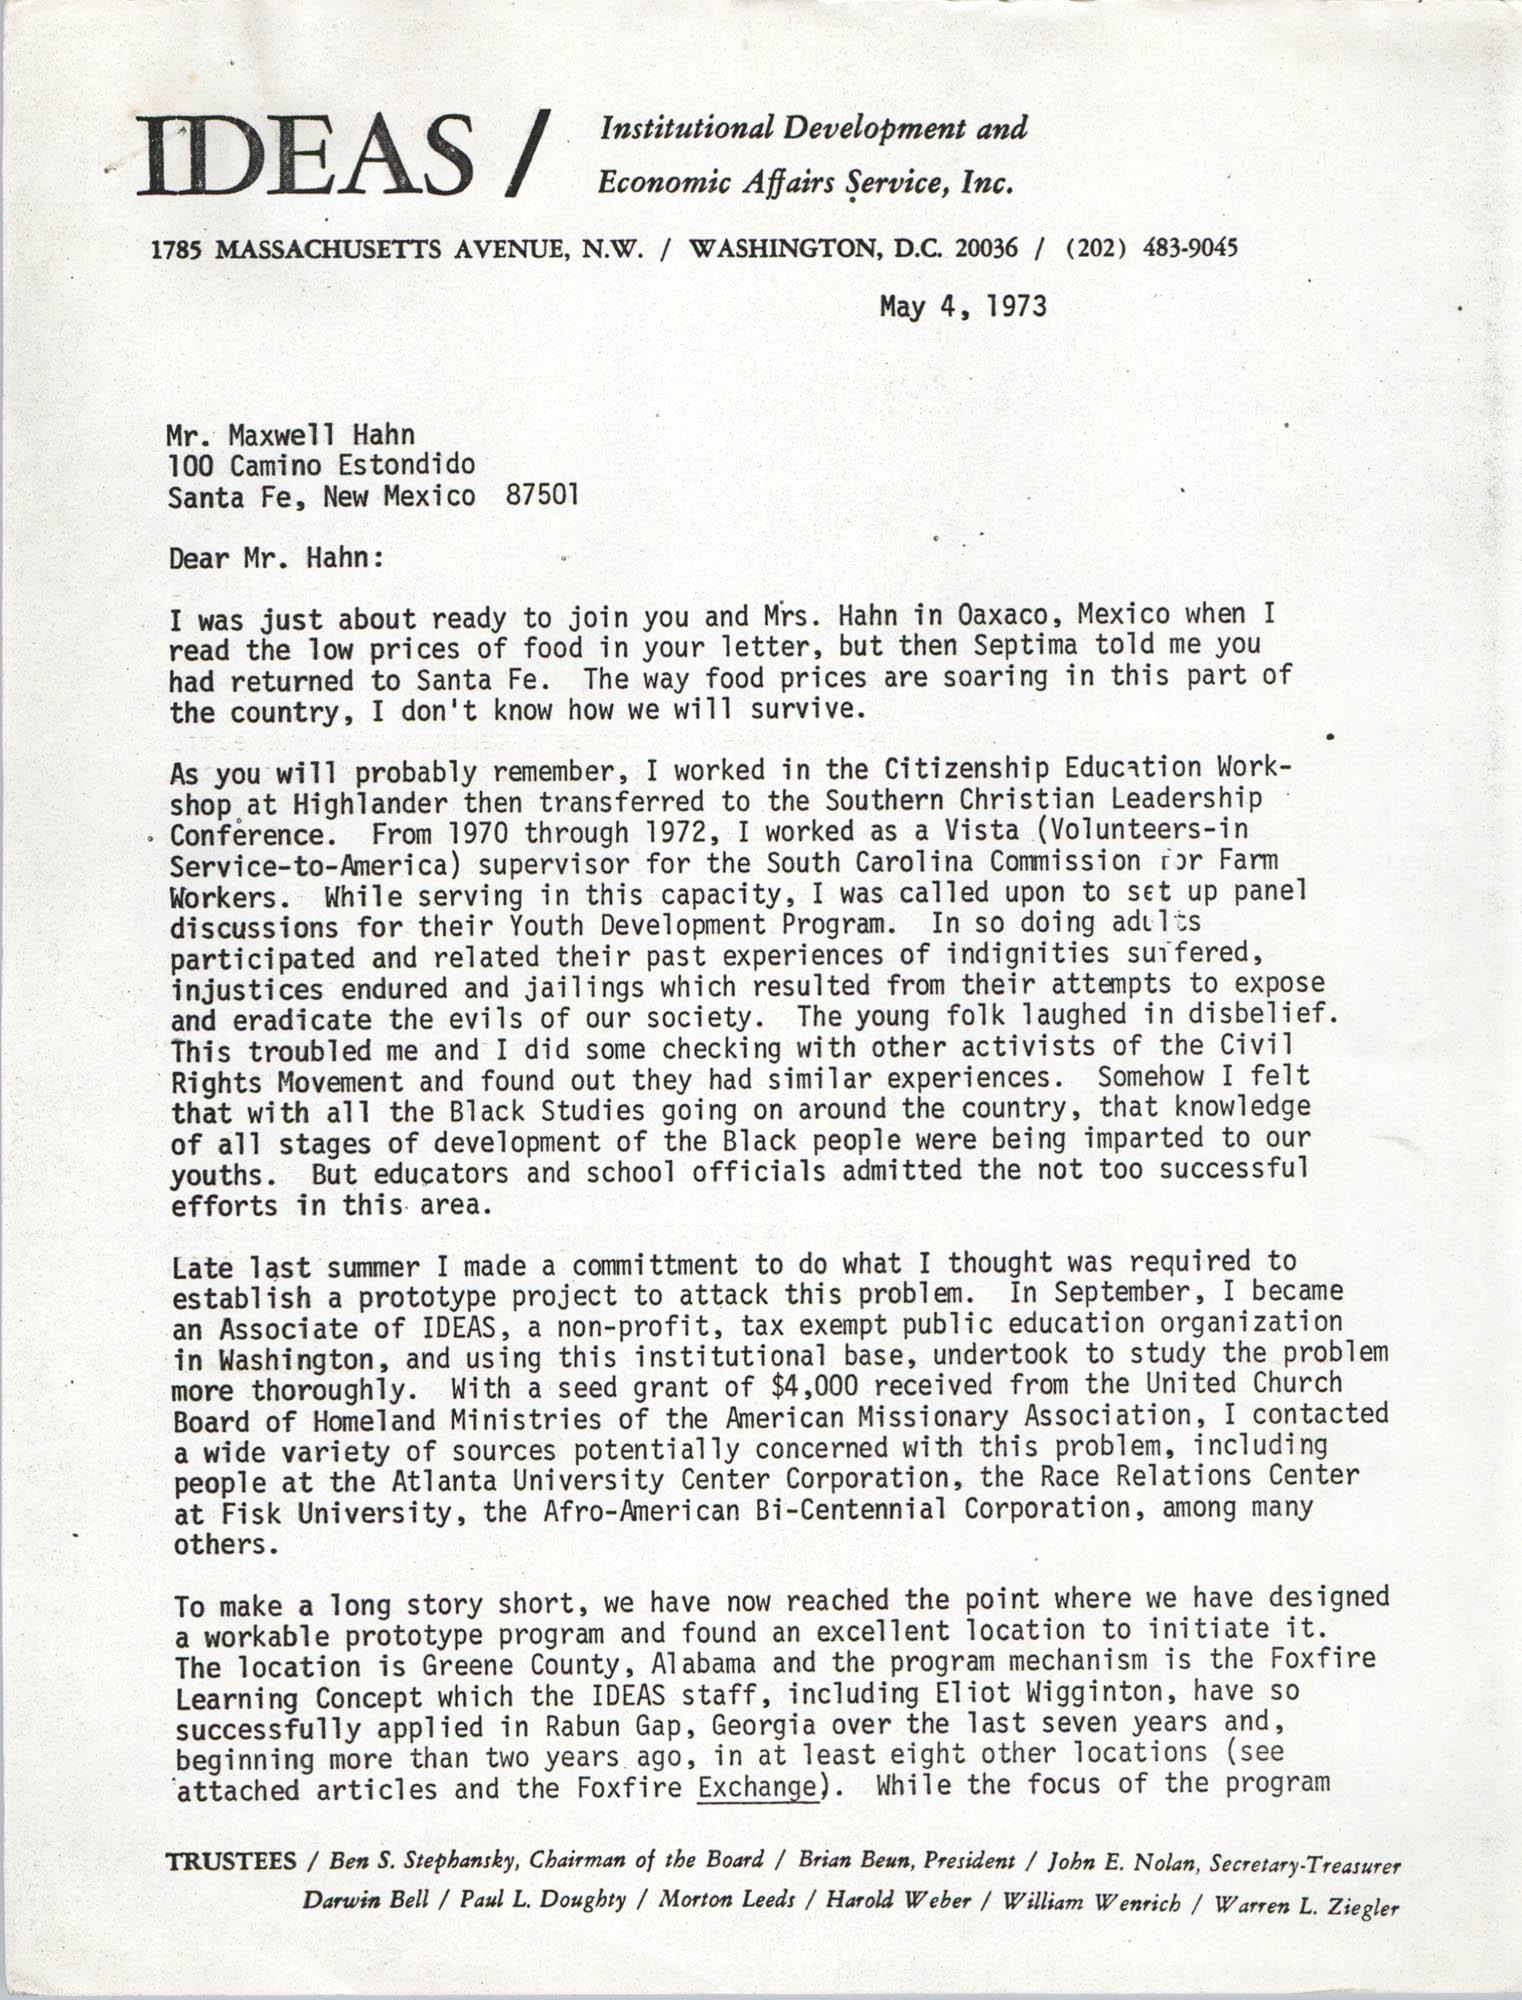 Letter from Bernice Robinson to Maxwell Hahn, May 4, 1973, Page 1